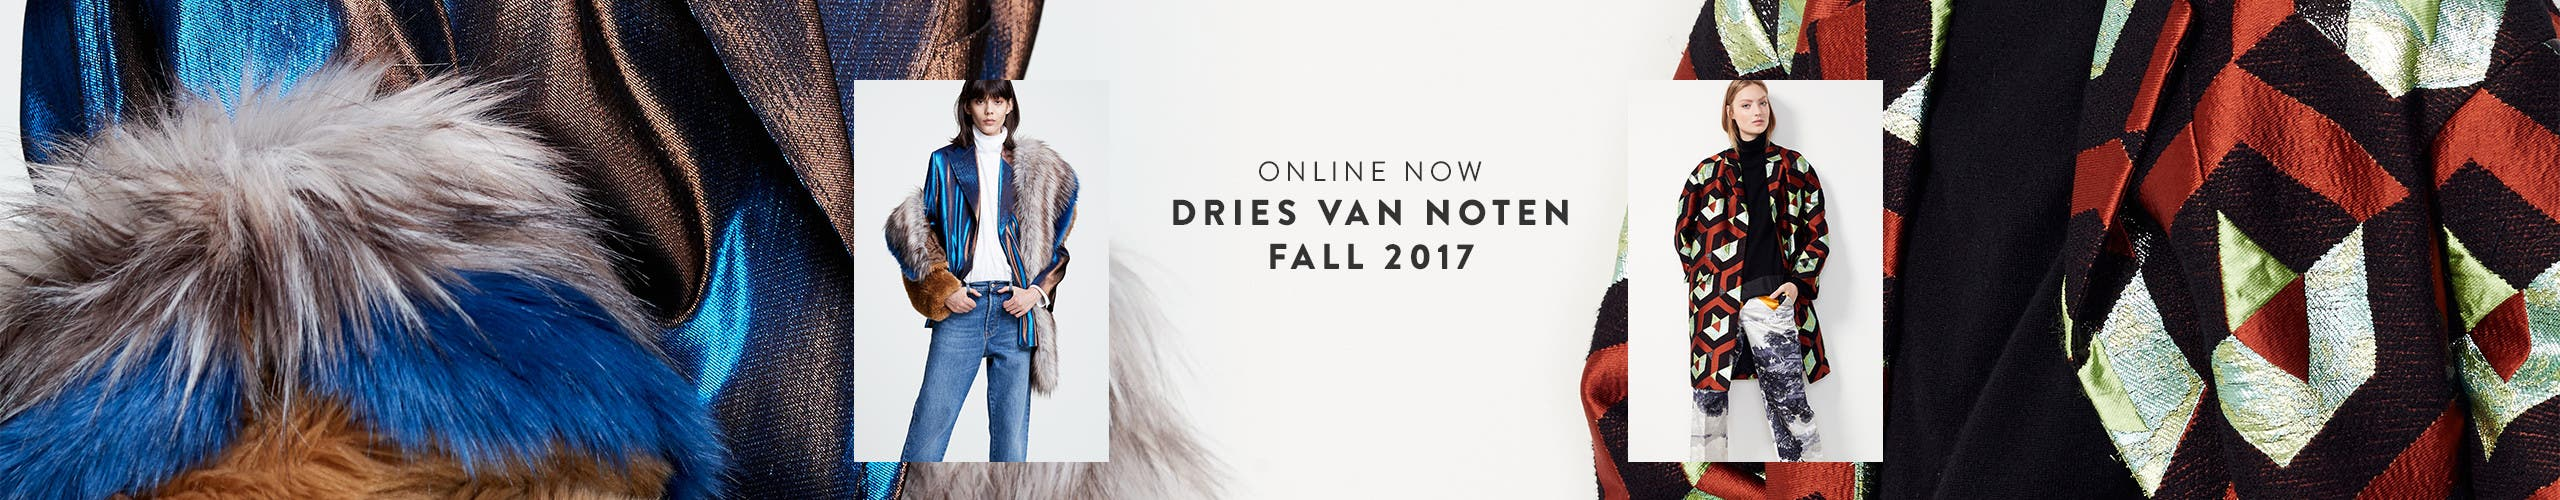 Online now: Dries Van Noten fall 2017.